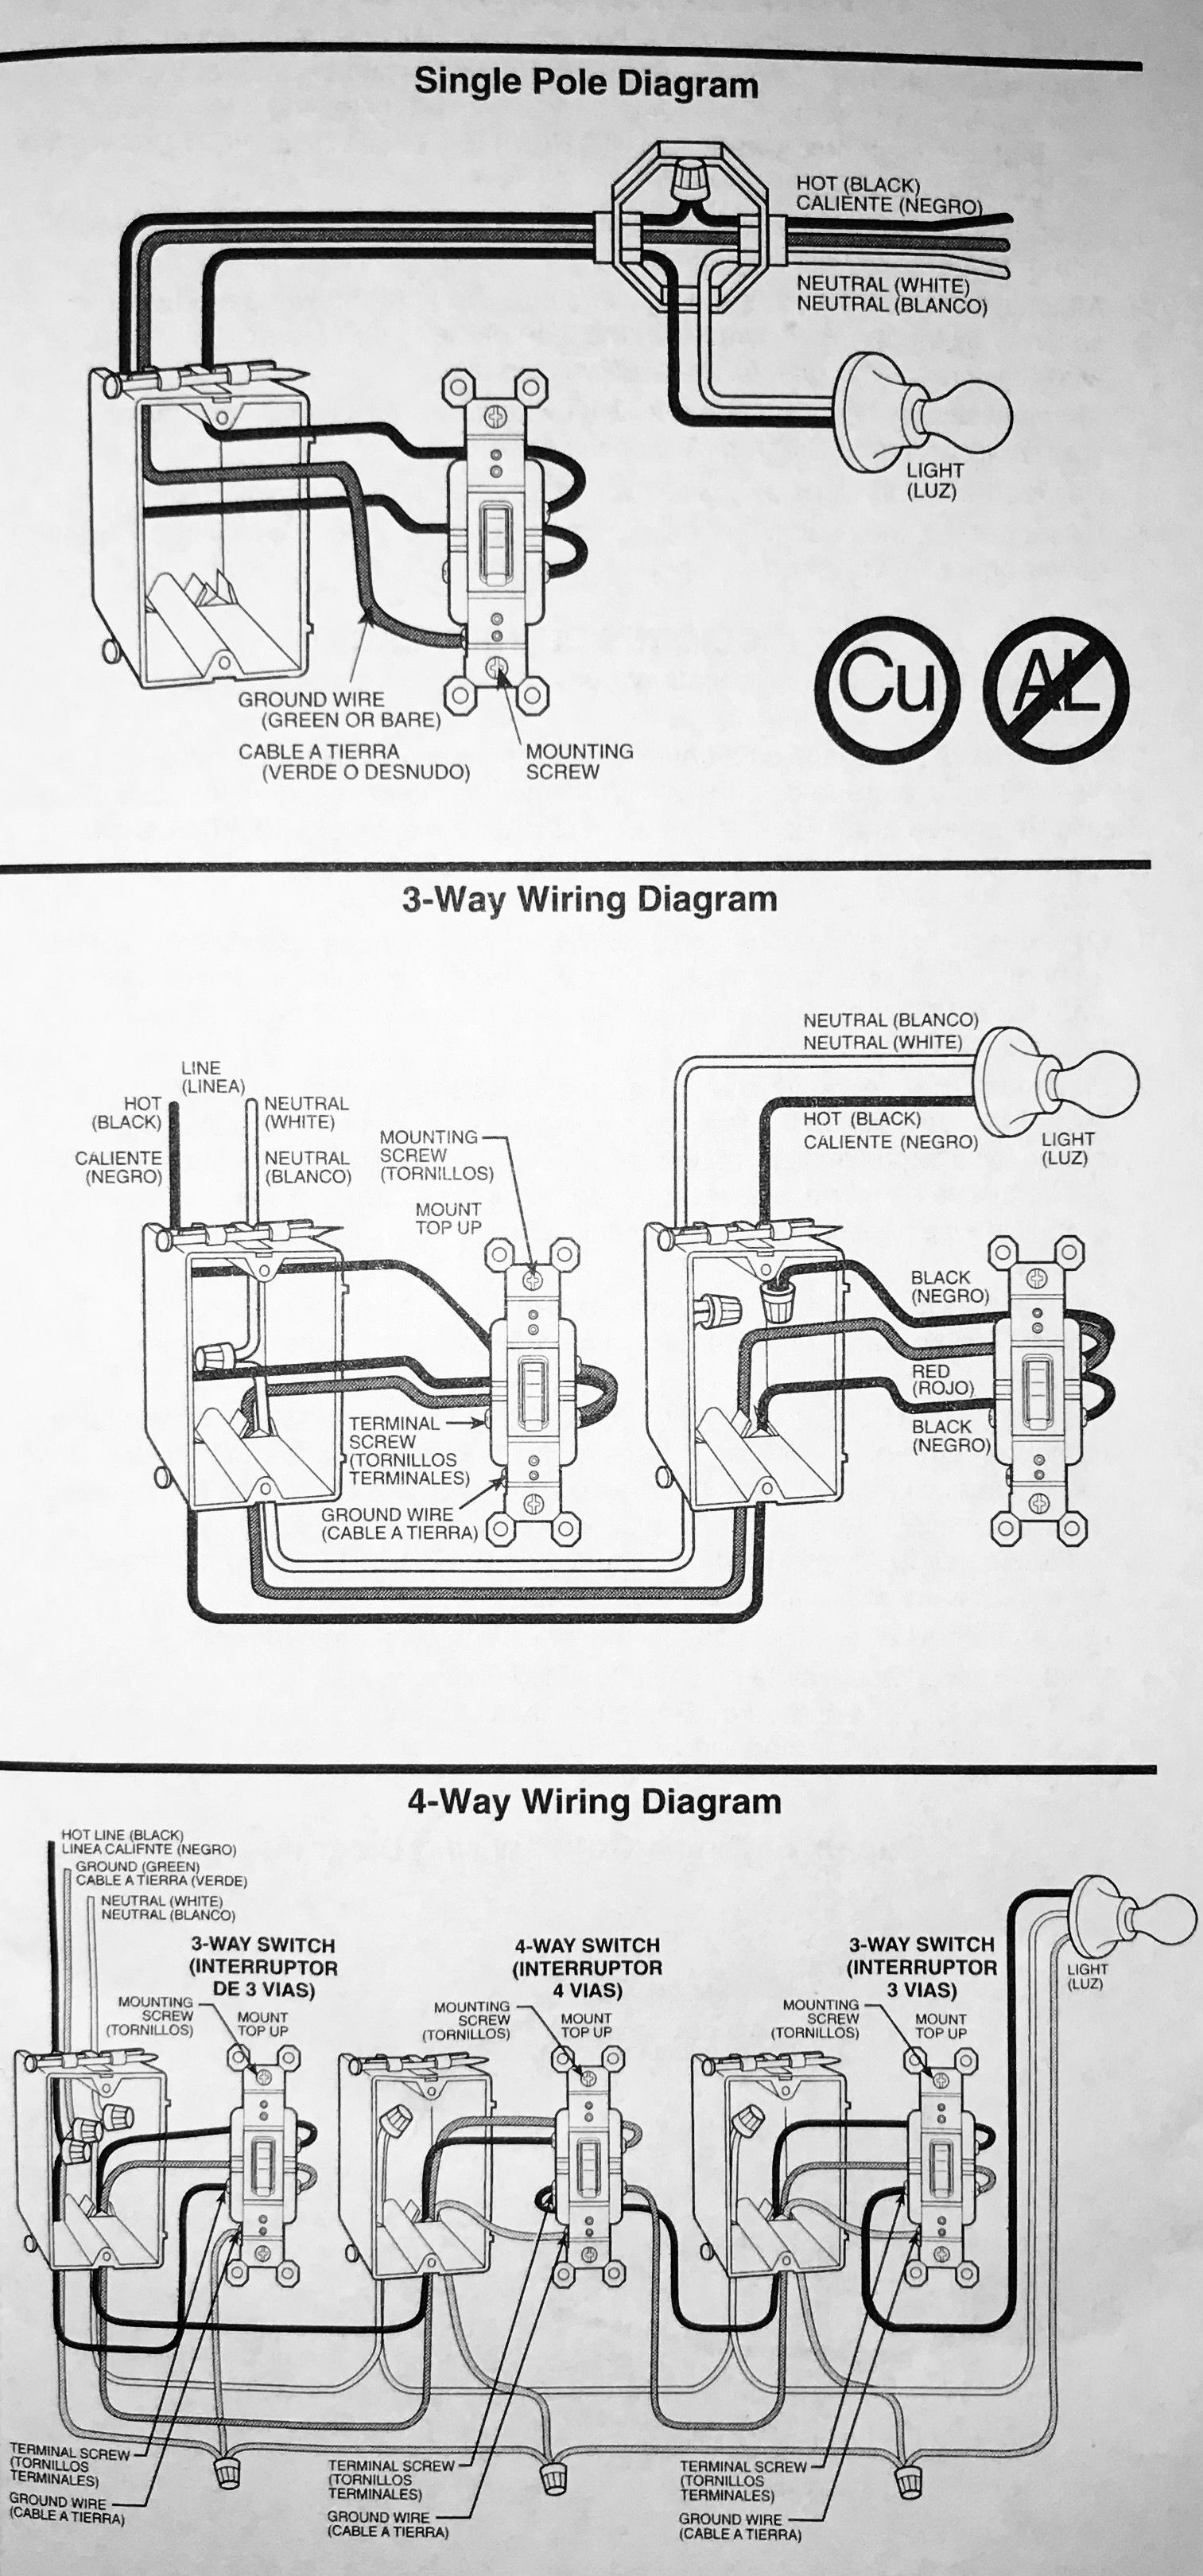 3 pole wiring diagram wiring diagram imp 3 pole switch wiring diagram 3 pole wire diagram [ 1513 x 3239 Pixel ]